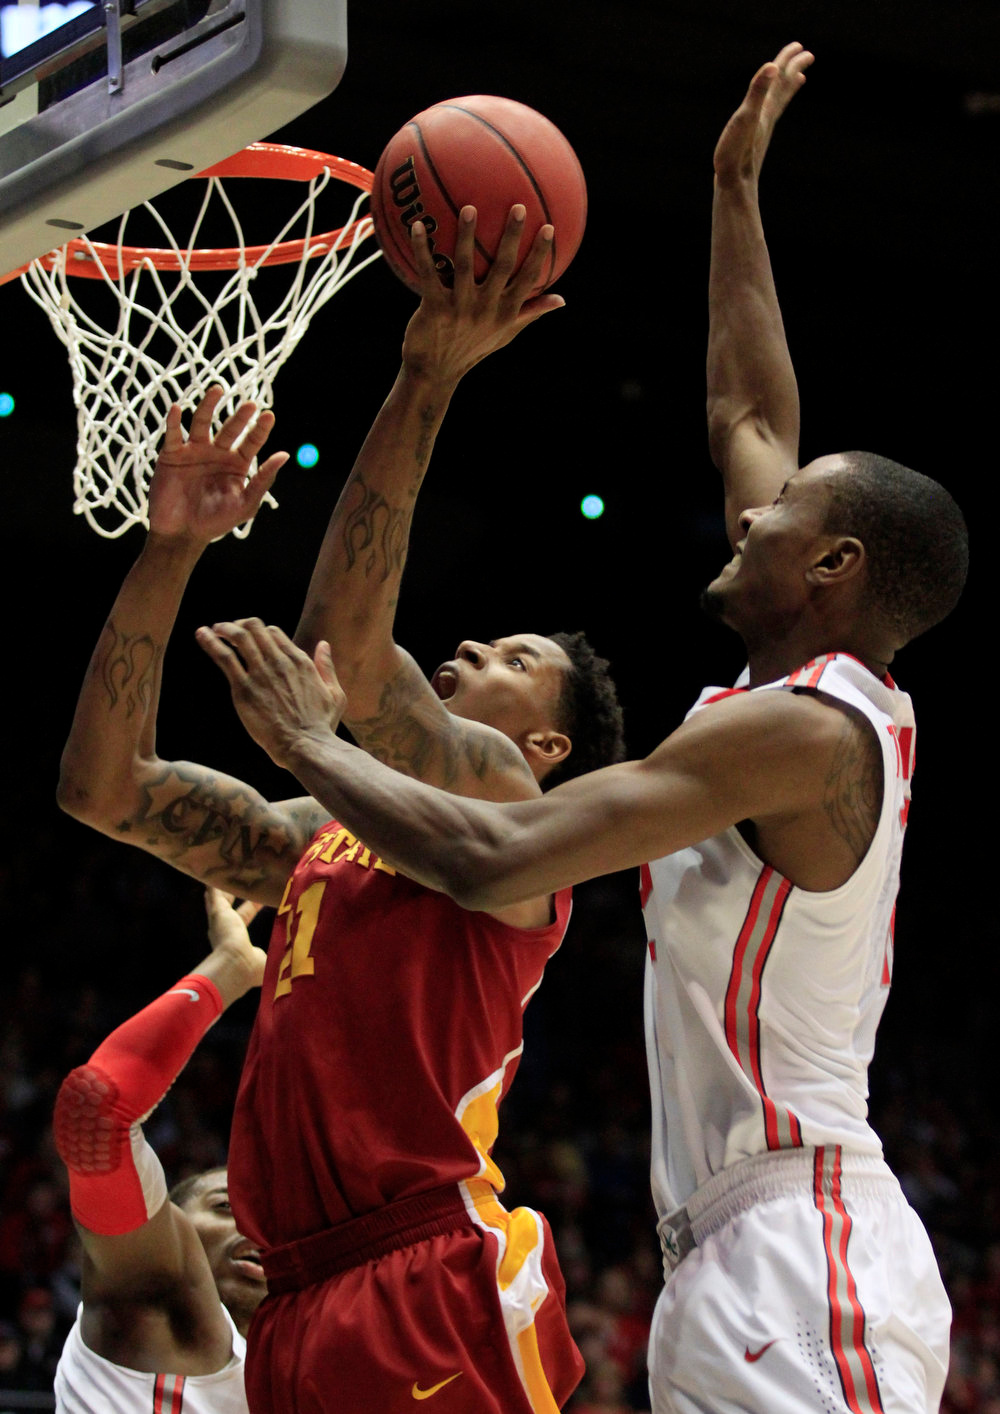 . Iowa State guard Will Clyburn, left, shoots against Ohio State forward Sam Thompson in the second half of a third-round game of the NCAA college basketball tournament, Sunday, March 24, 2013, in Dayton, Ohio. (AP Photo/Skip Peterson)